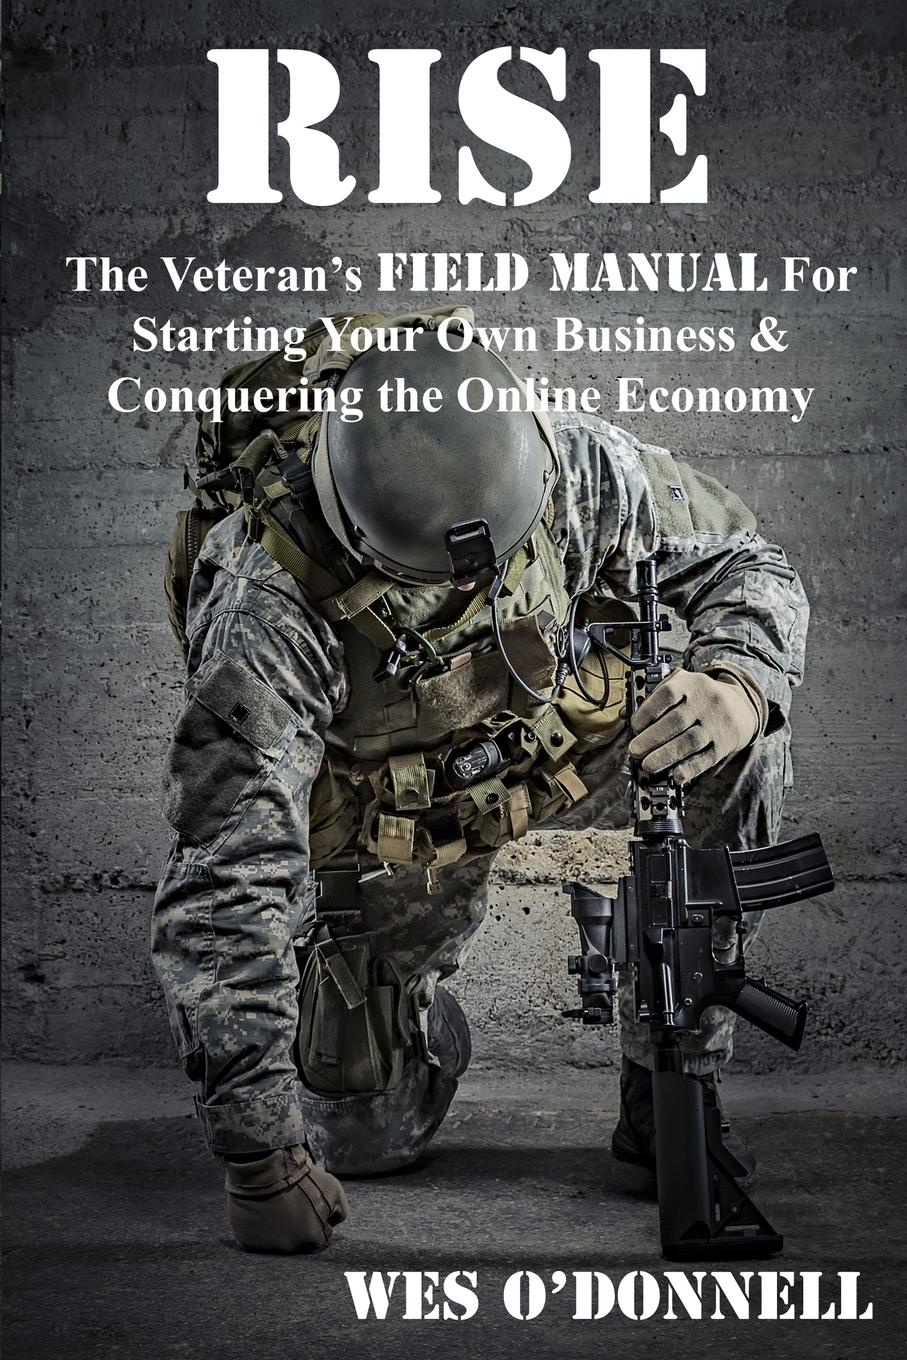 Wes W. Odonnell Rise. The Veteran's Field Manual For Starting Your Own Shopify Business adam toren starting your own business become an entrepreneur